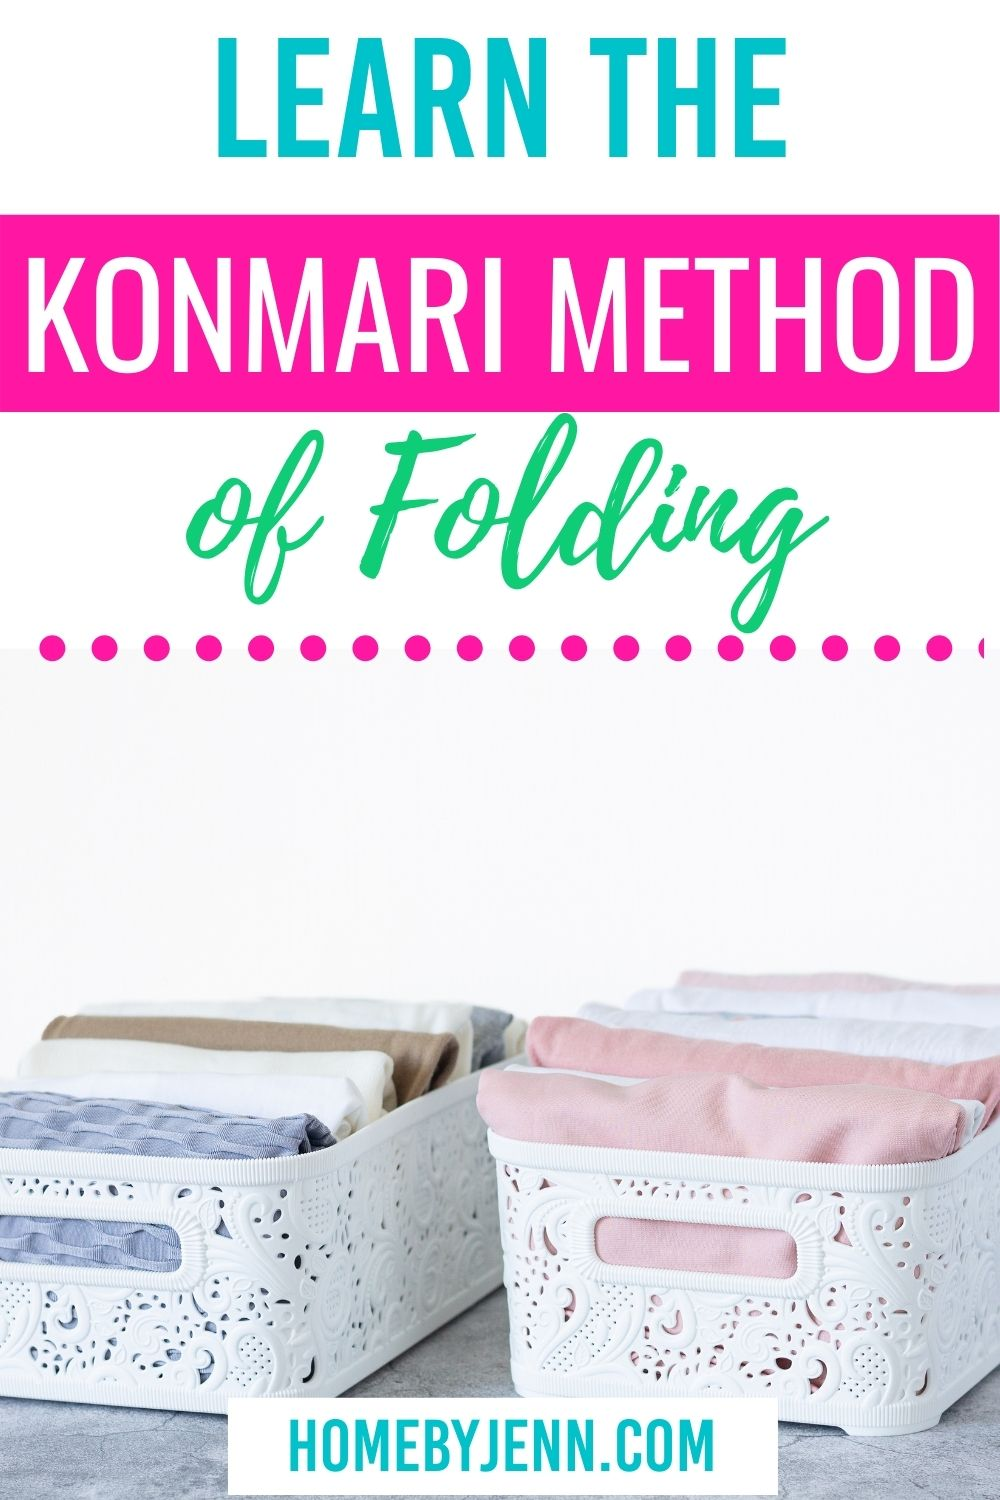 Save space in your drawers and closet when you learn the Konmari method of folding. I'm going to walk you through the Konmari folding method. It's easy to do and you'll love how much space you save when you fold your clothes using Marie Kondo's method. via @homebyjenn